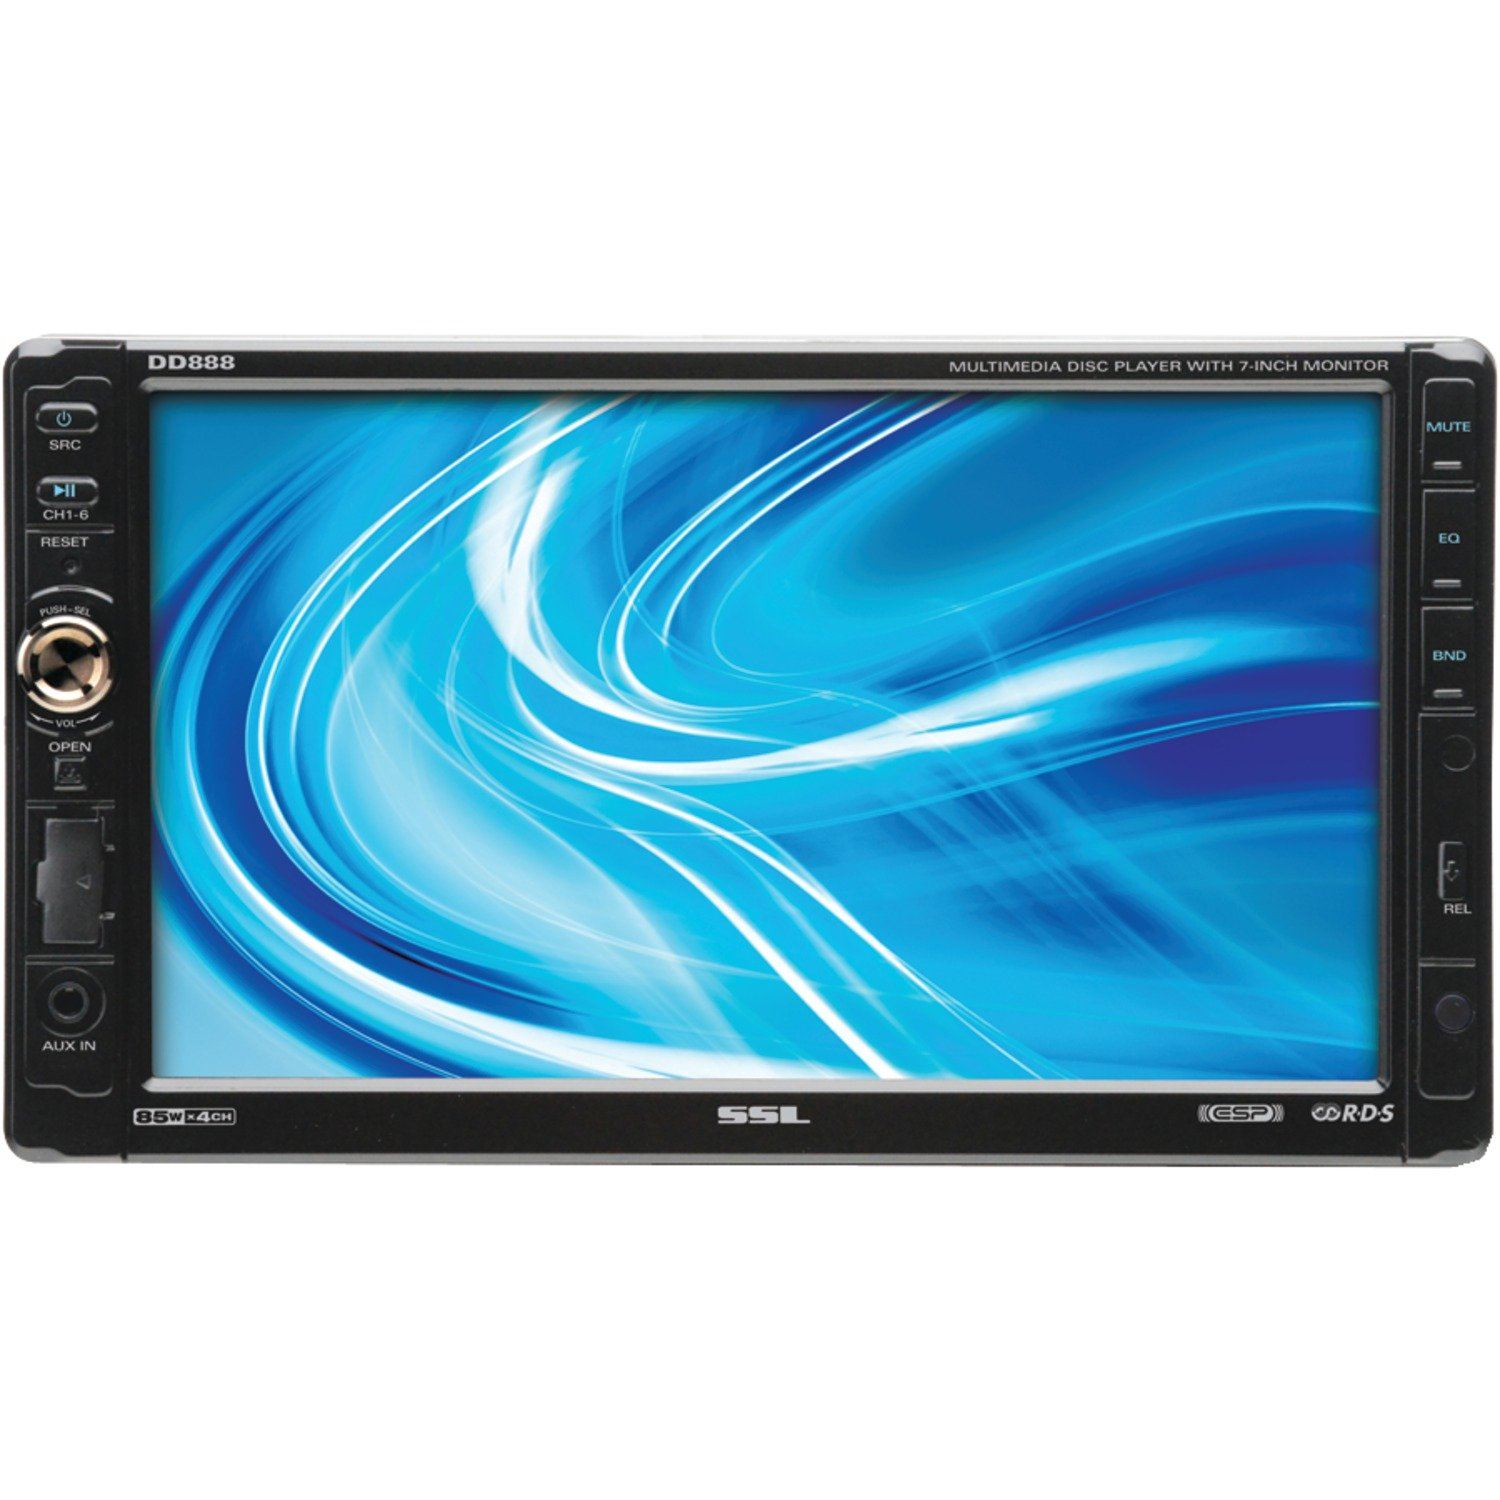 71LGyWao8gL._SL1500_ amazon com sound storm dd888 double din dvd cd mp3 usb sd am fm ssl dd888 wiring harness at mifinder.co